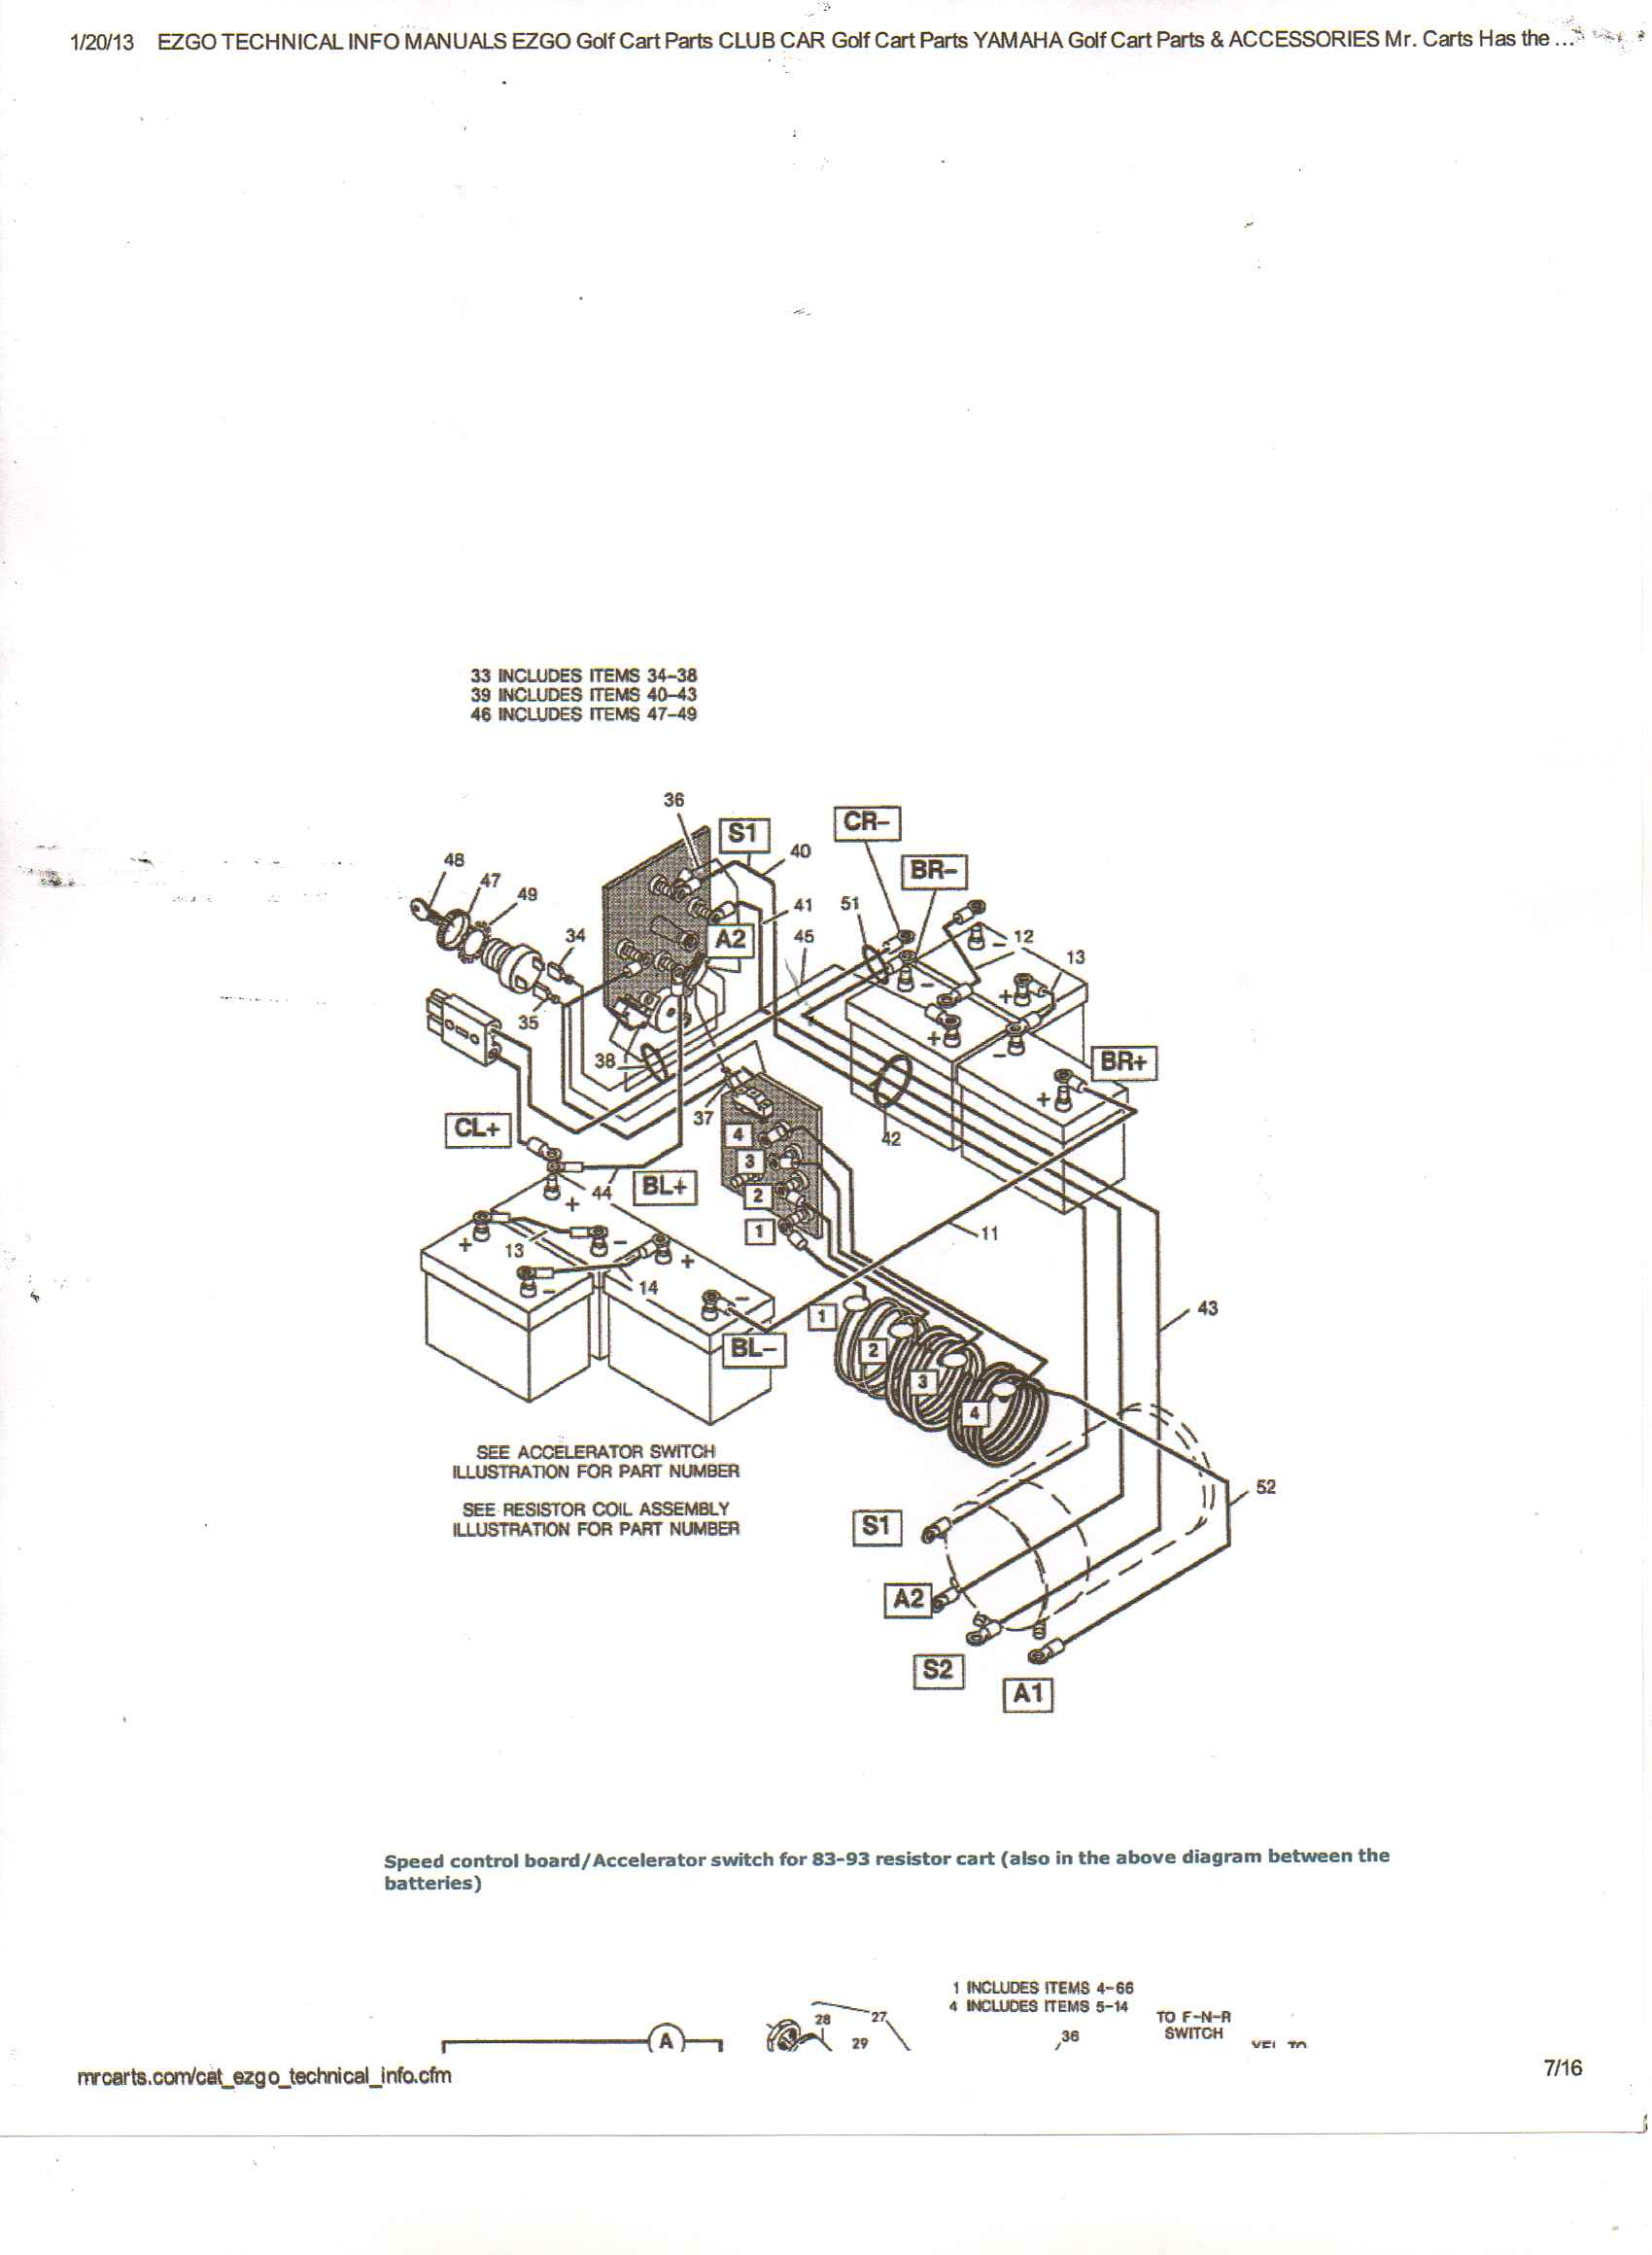 1989 Ez Go Gas Golf Cart Wiring Diagram 1989 ez go gas golf cart – 1994 Club Car Wiring Diagram